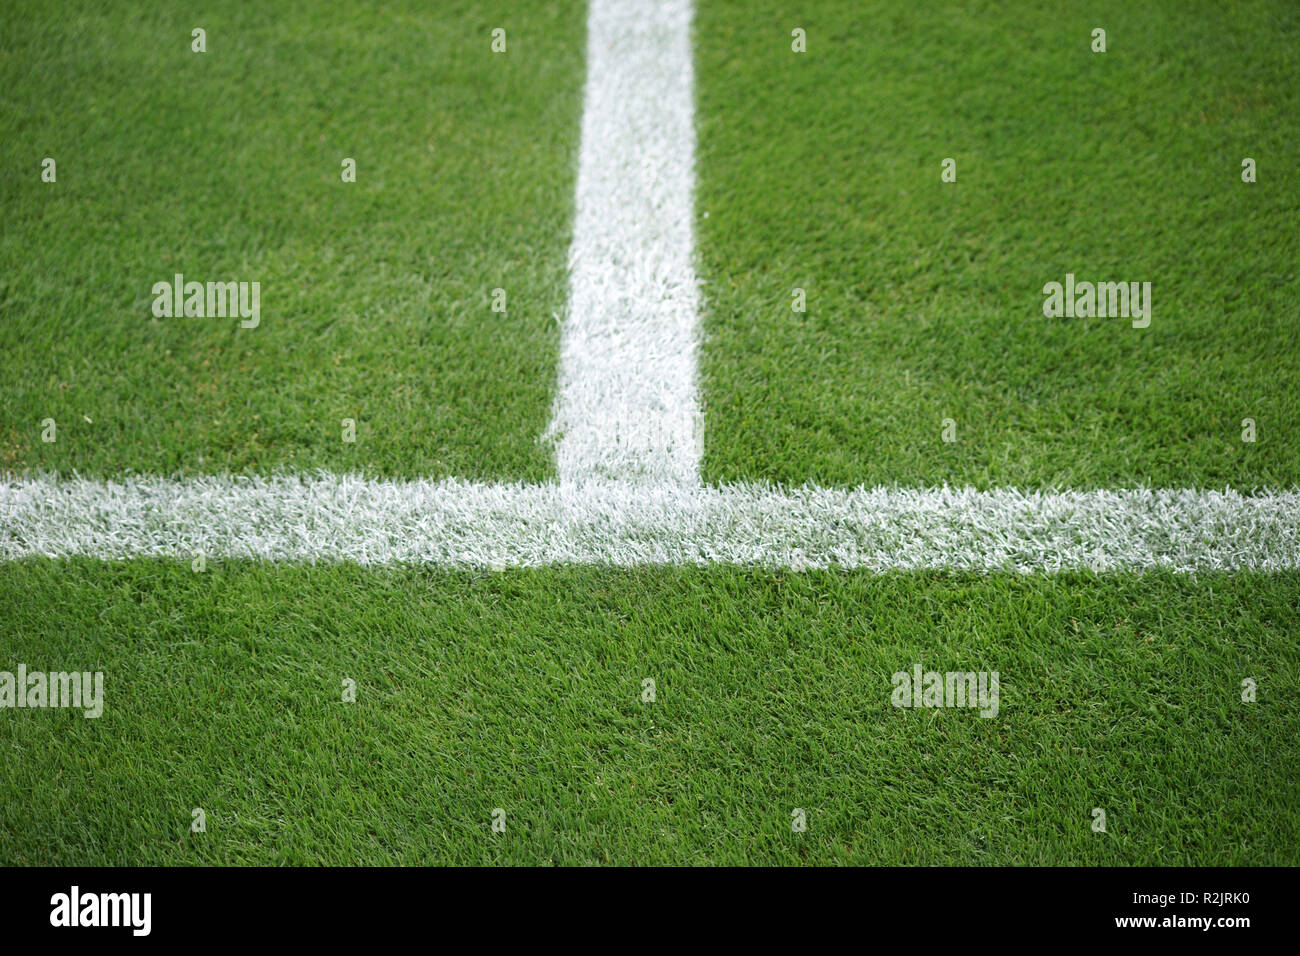 Green grass field of a soccer field with the sideline and the halfway line, - Stock Image